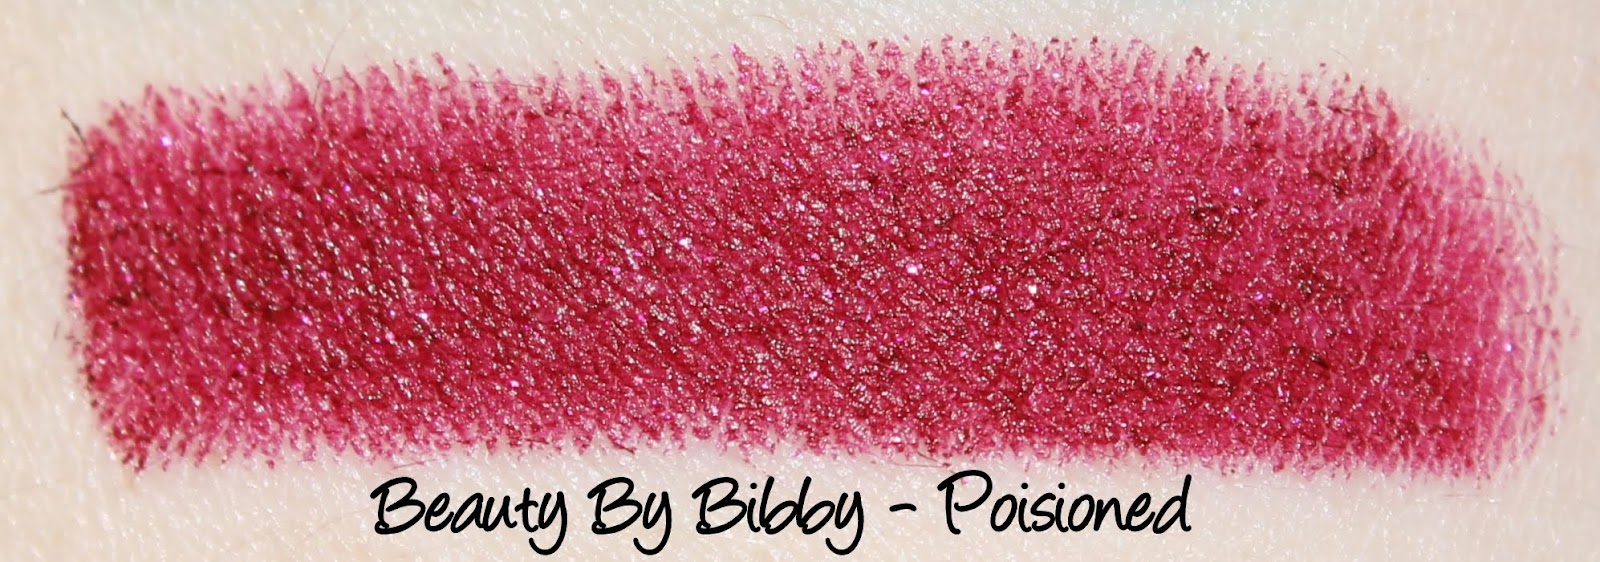 Beauty By Bibby Lipsticks - Poisoned and Medusa Swatches & Review